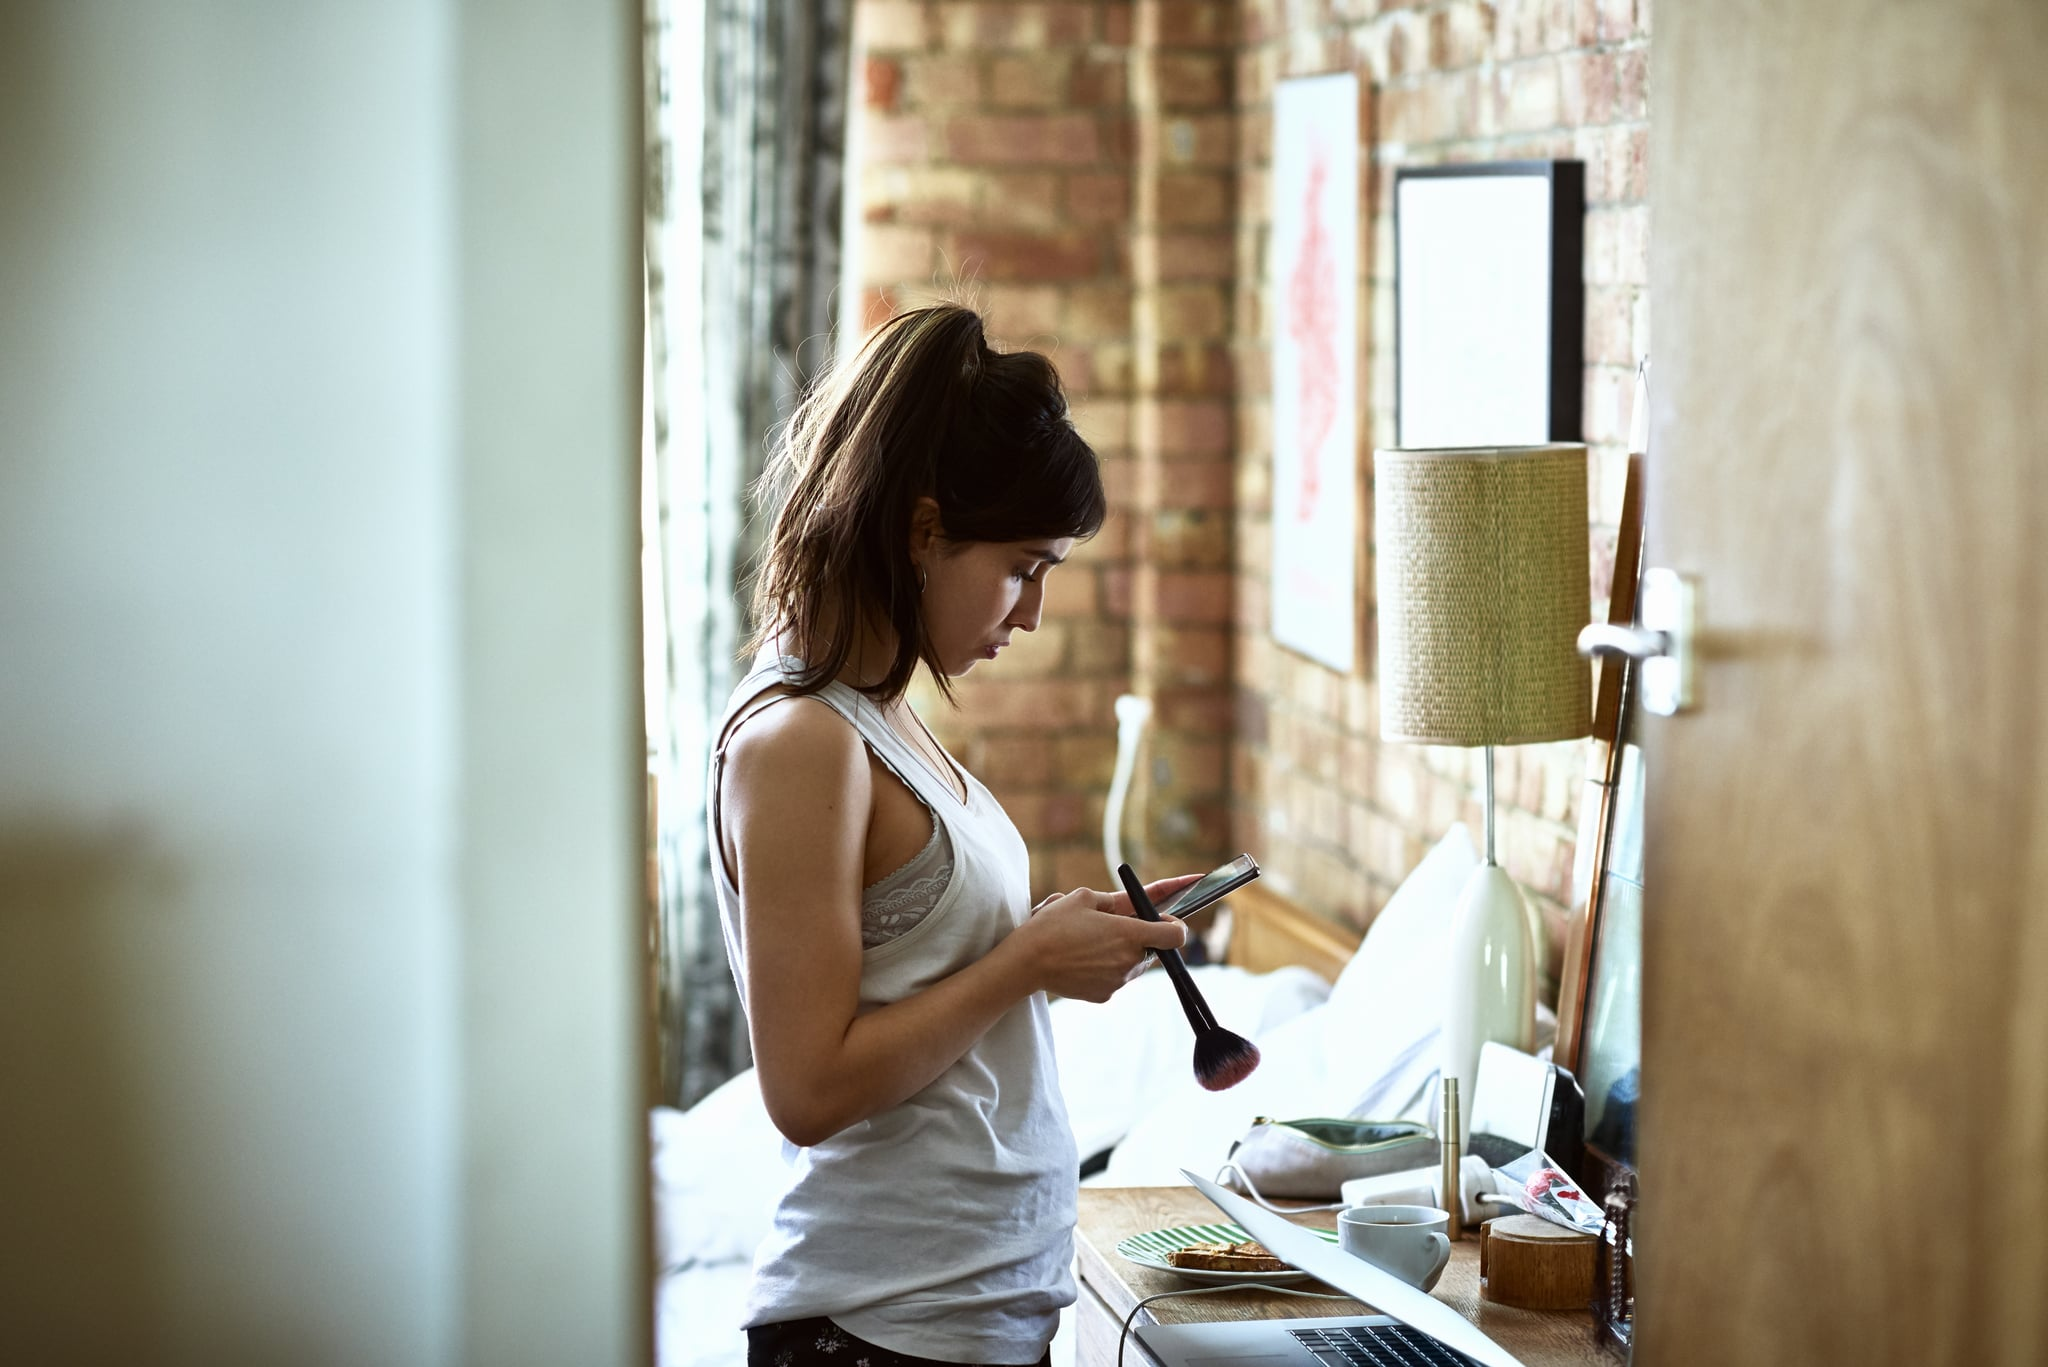 Woman in her 20s getting ready in the morning, laptop half open, reading text message